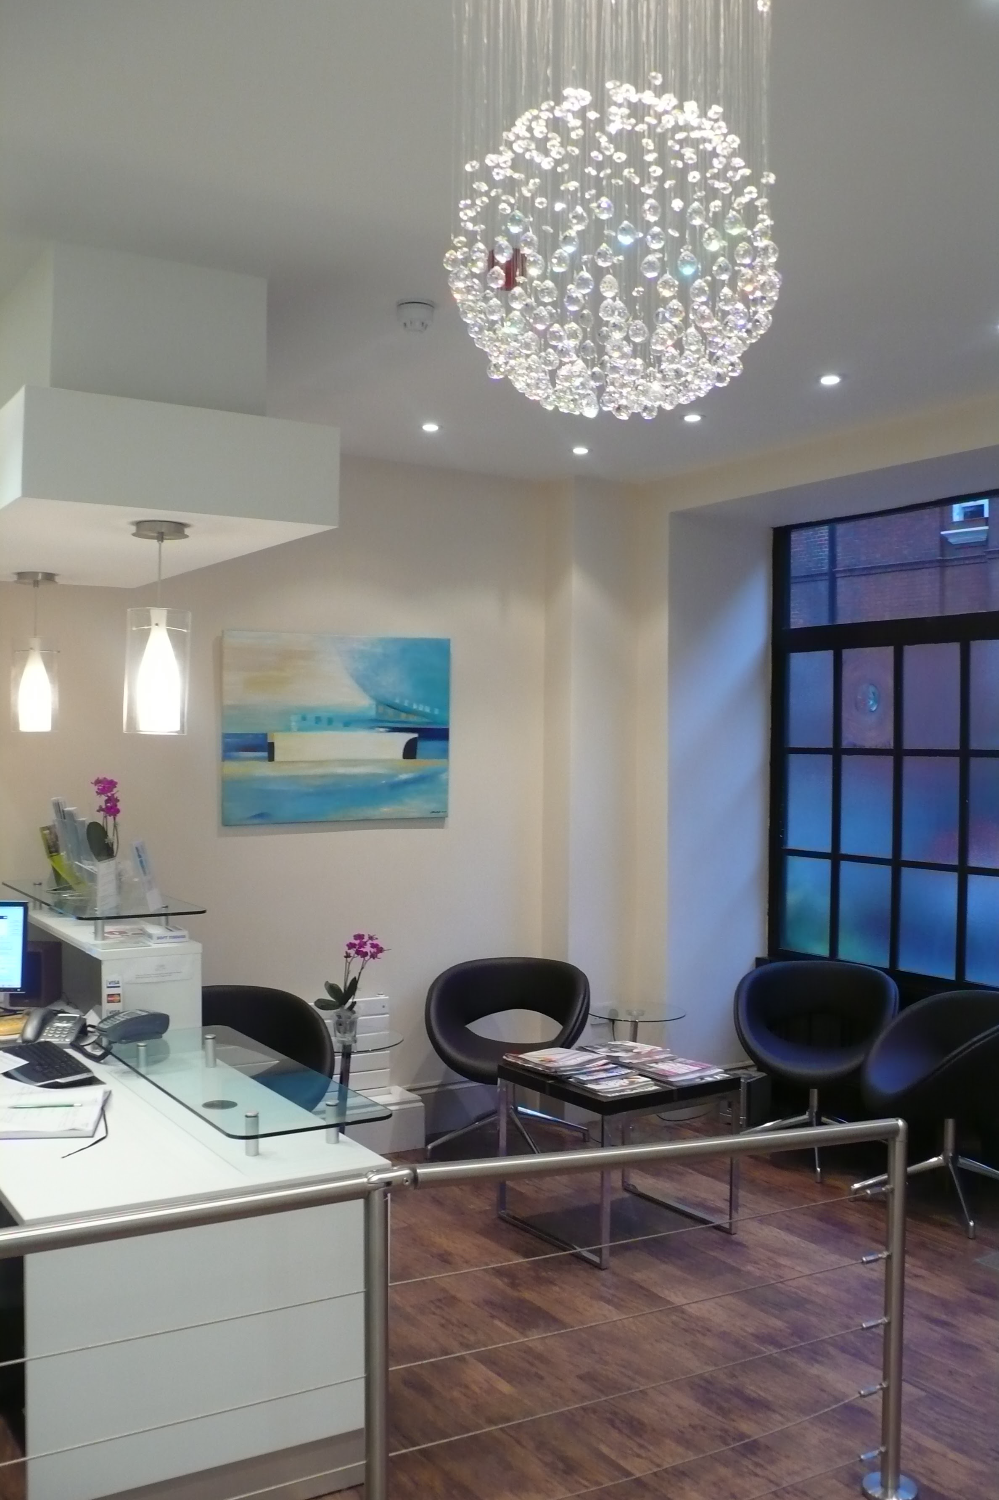 SW1 Dental Studio and Implant Clinic